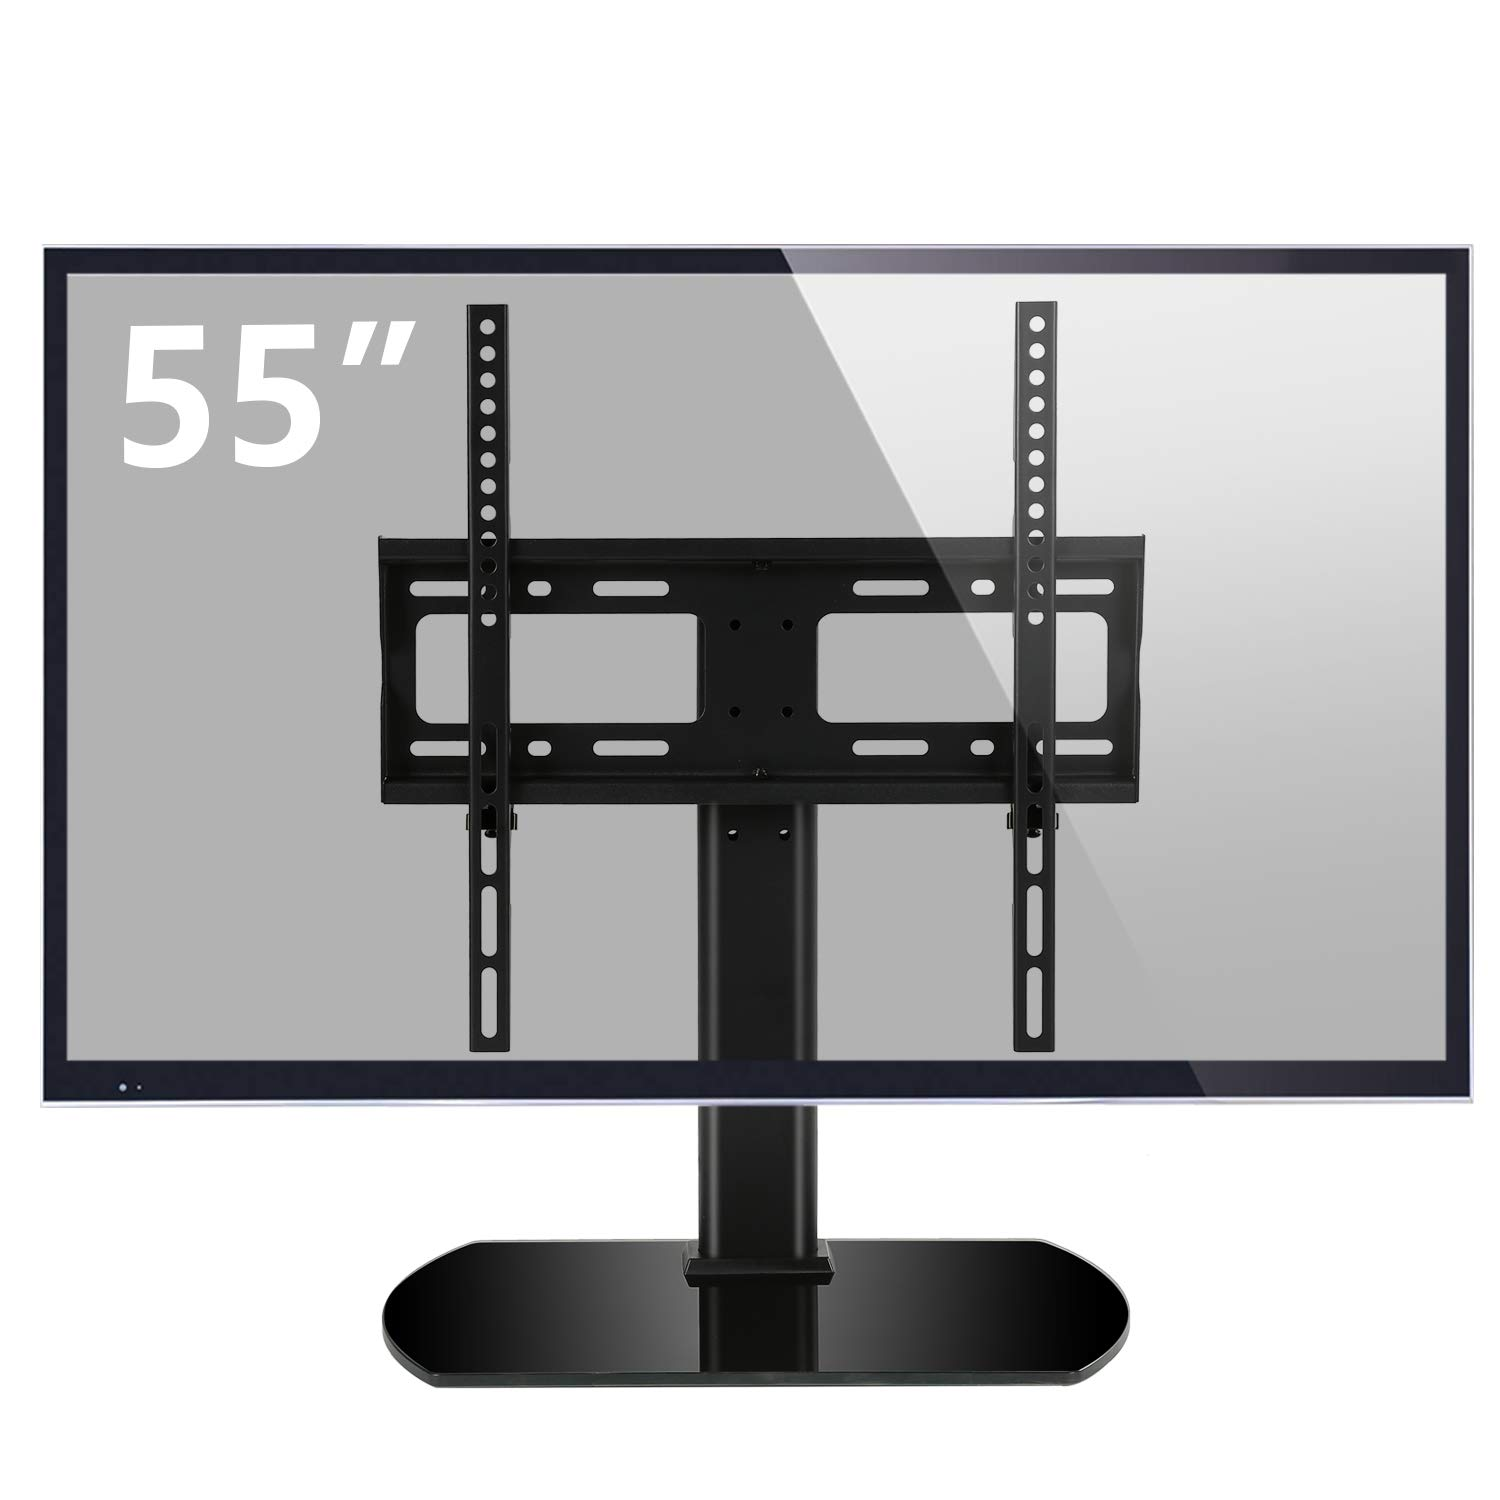 Rfiver Universal Swivel Tabletop TV Stand with Mount for 27 32 37 40 42 43 47 50 55 inch LED,LCD and Plasma Flat Screen TVs with Height Adjustment VESA 400x400mm, UT2002 by Rfiver